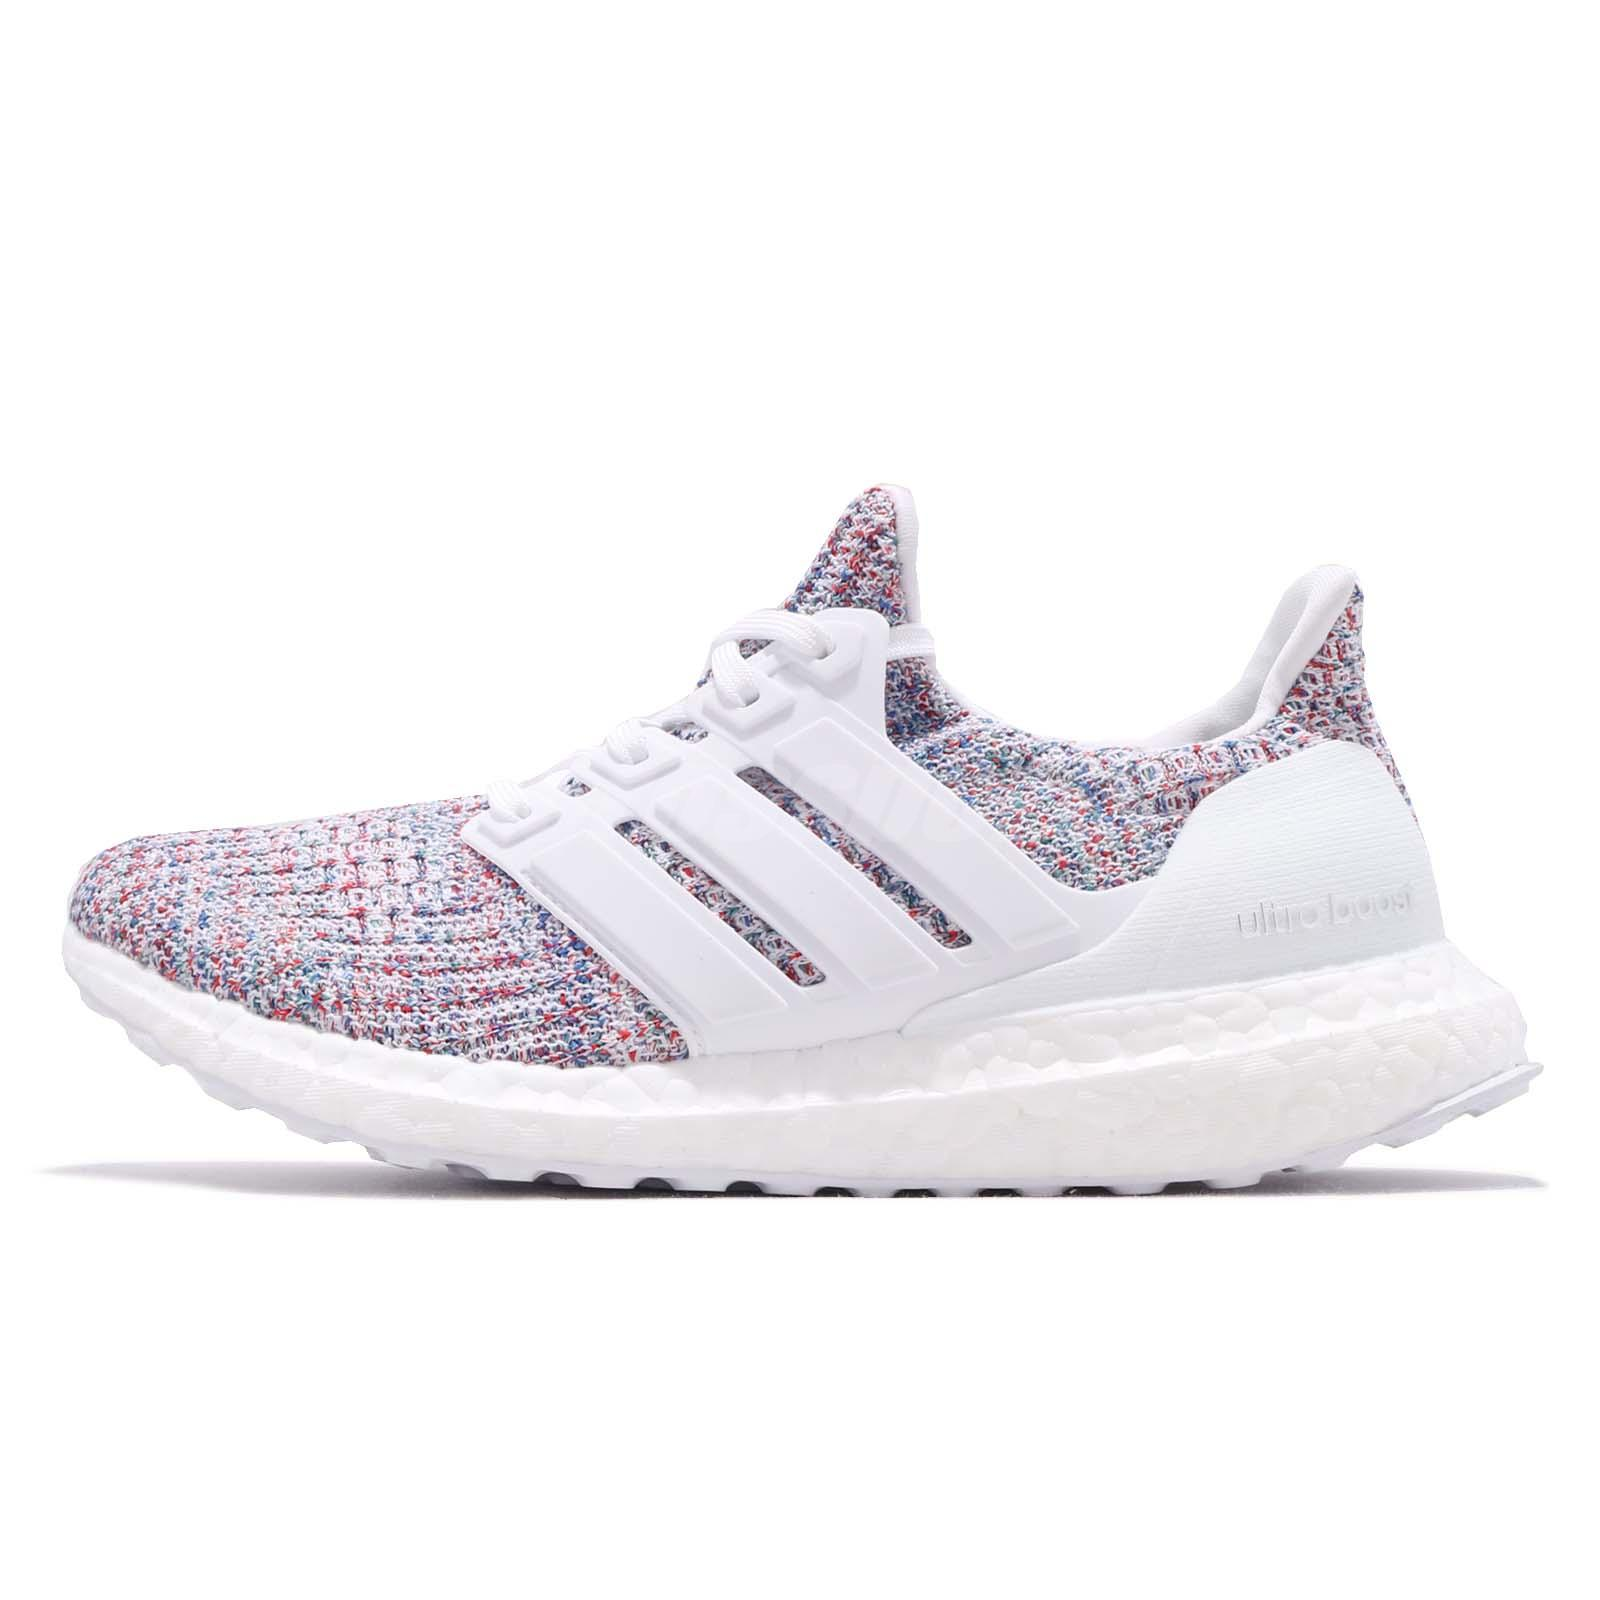 premium selection 5d7bf db464 adidas UltraBOOST W 4.0 Multi-Color White Womens Running Shoes BOOST DB3211